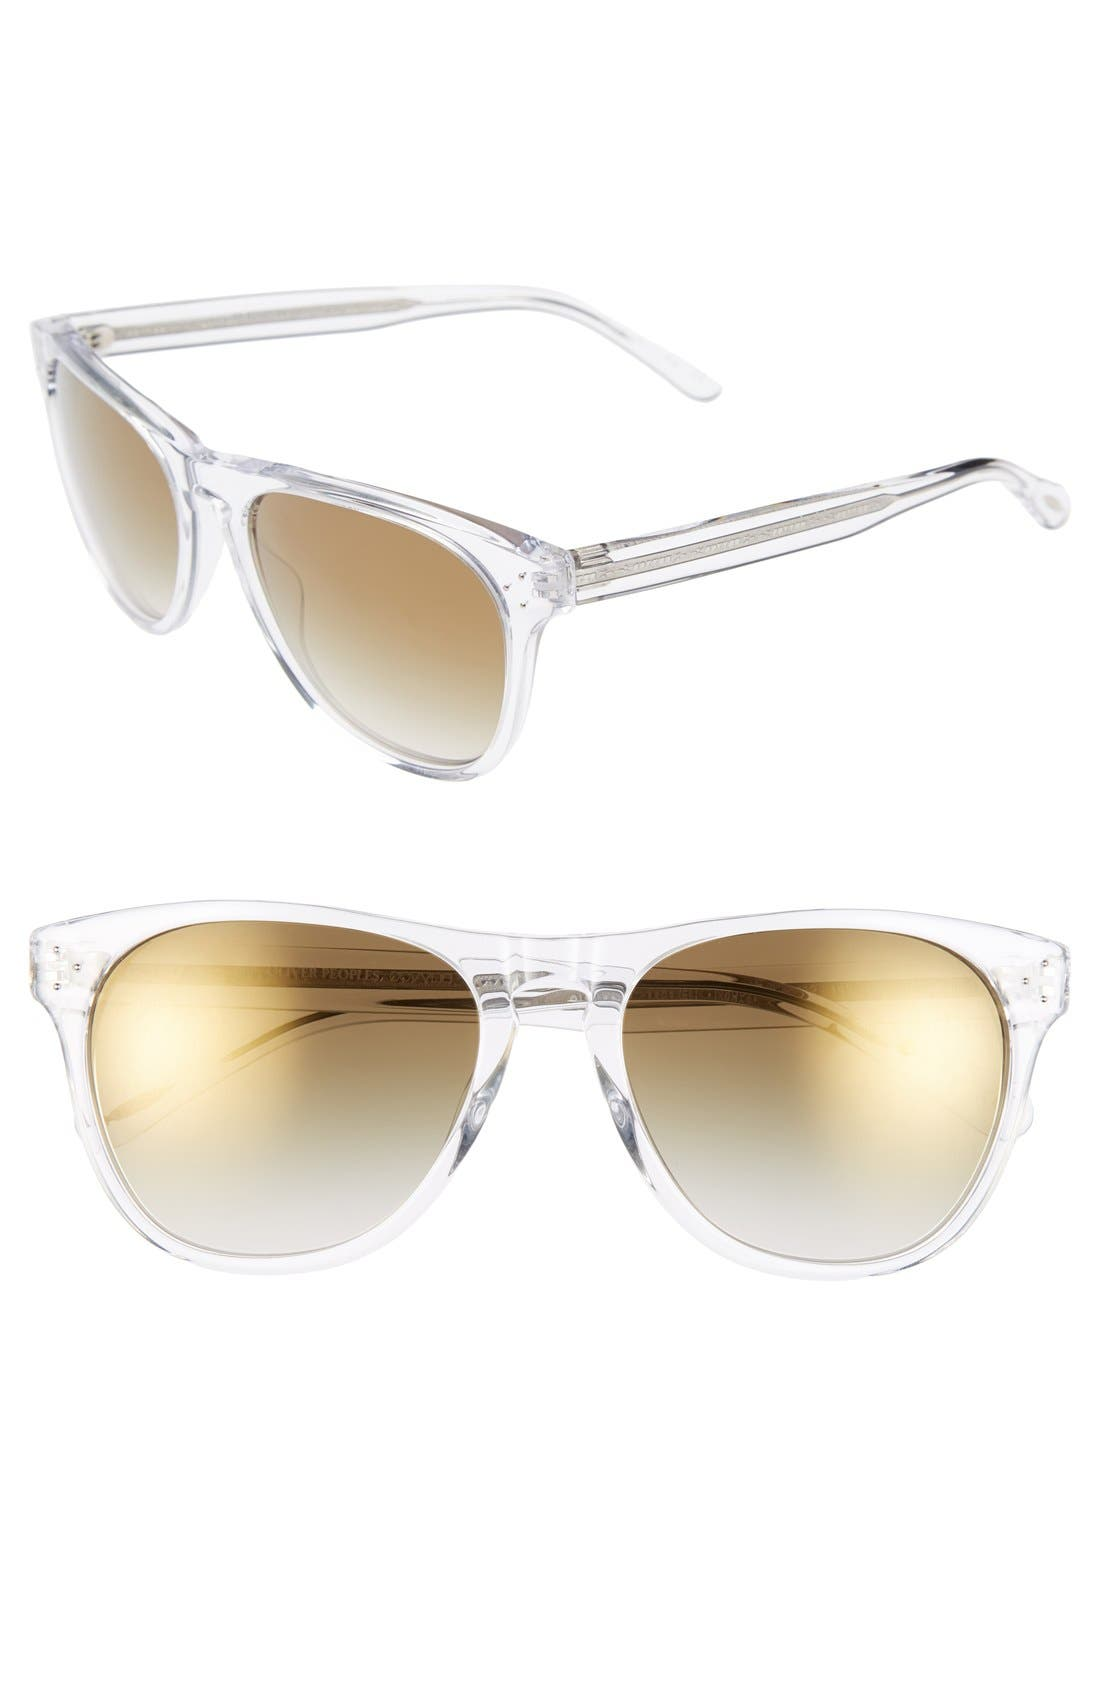 Main Image - Oliver Peoples 'Daddy B' 58mm Sunglasses